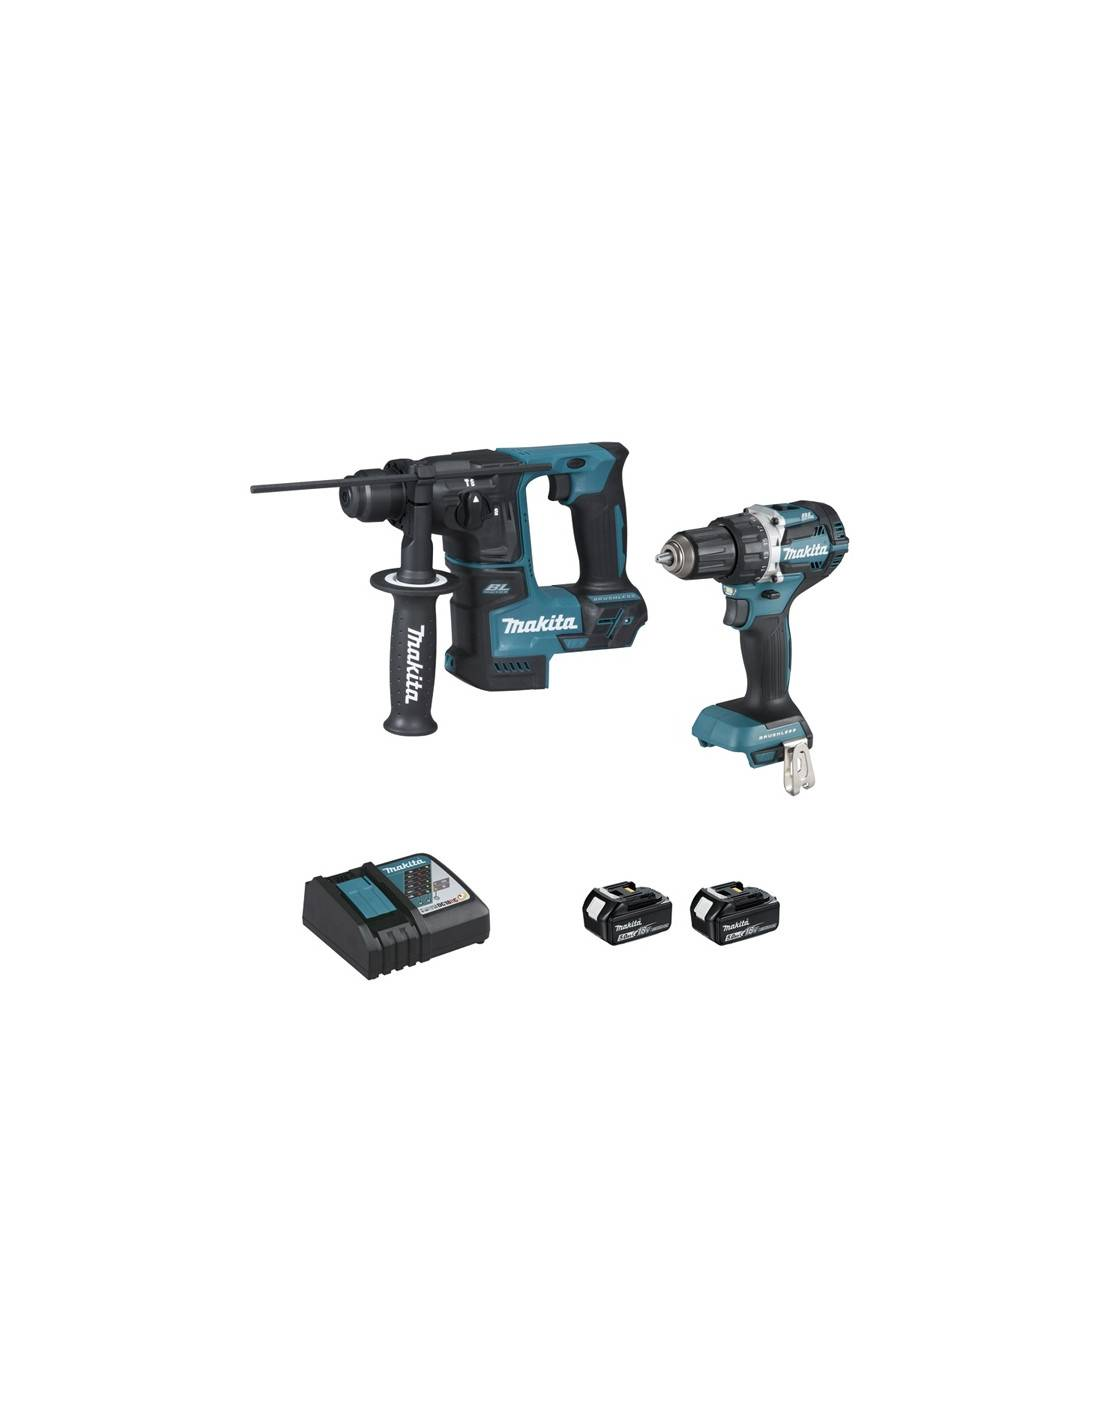 Pack Perceuse visseuse DDF484 + Perforateur DHR171 (2X5AH) en coffret MAKPAC - MAKITA - DLX2271TJ